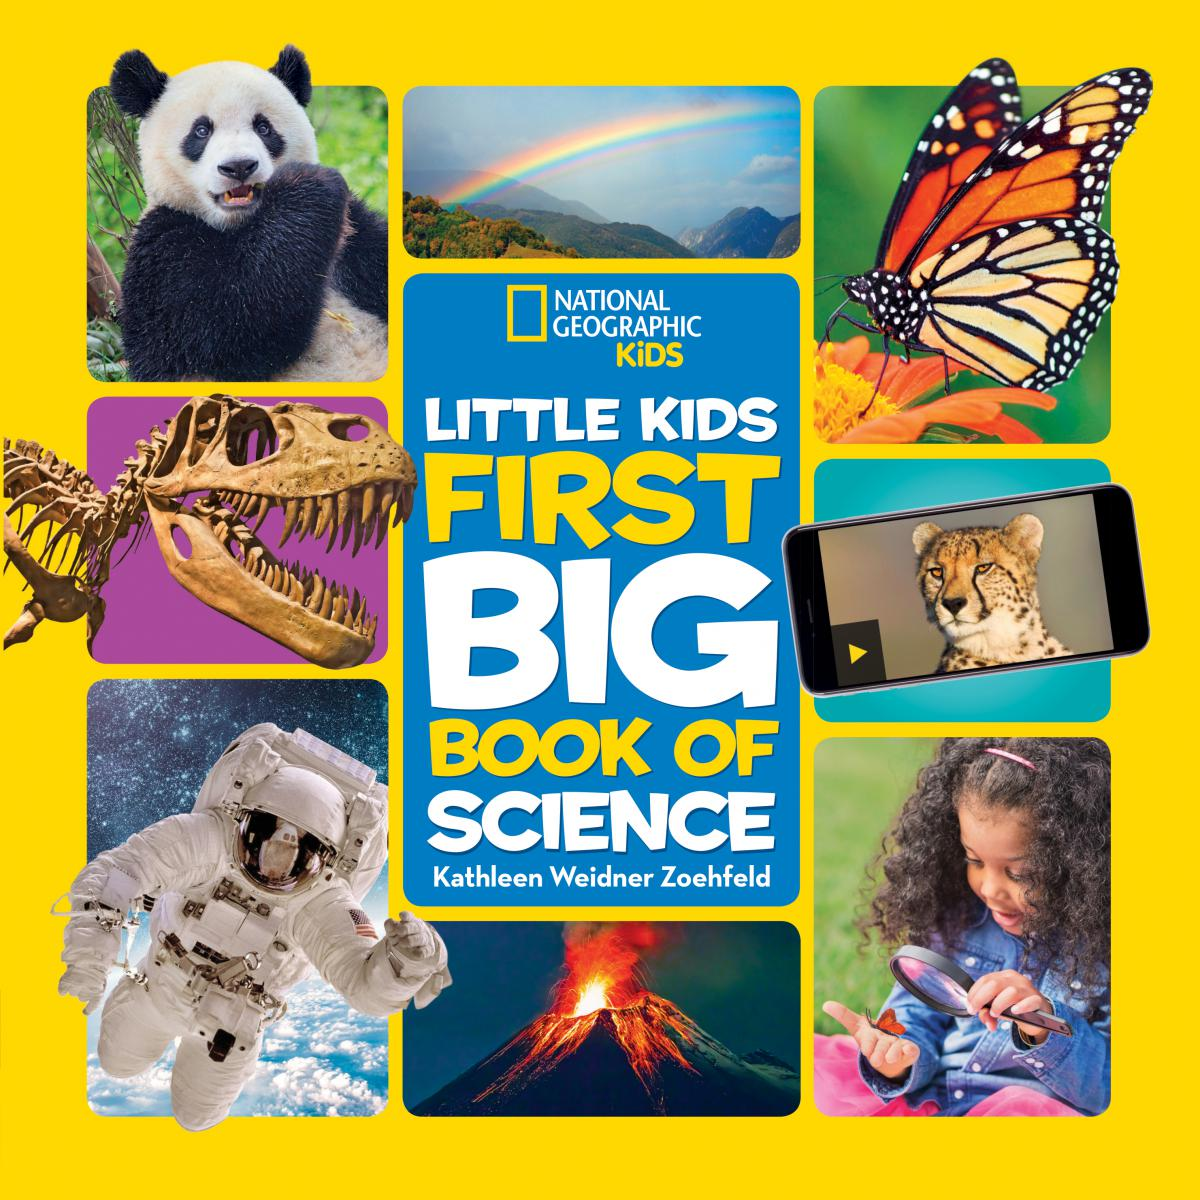 National Geographic Kids: Little Kids First Big Book of Science